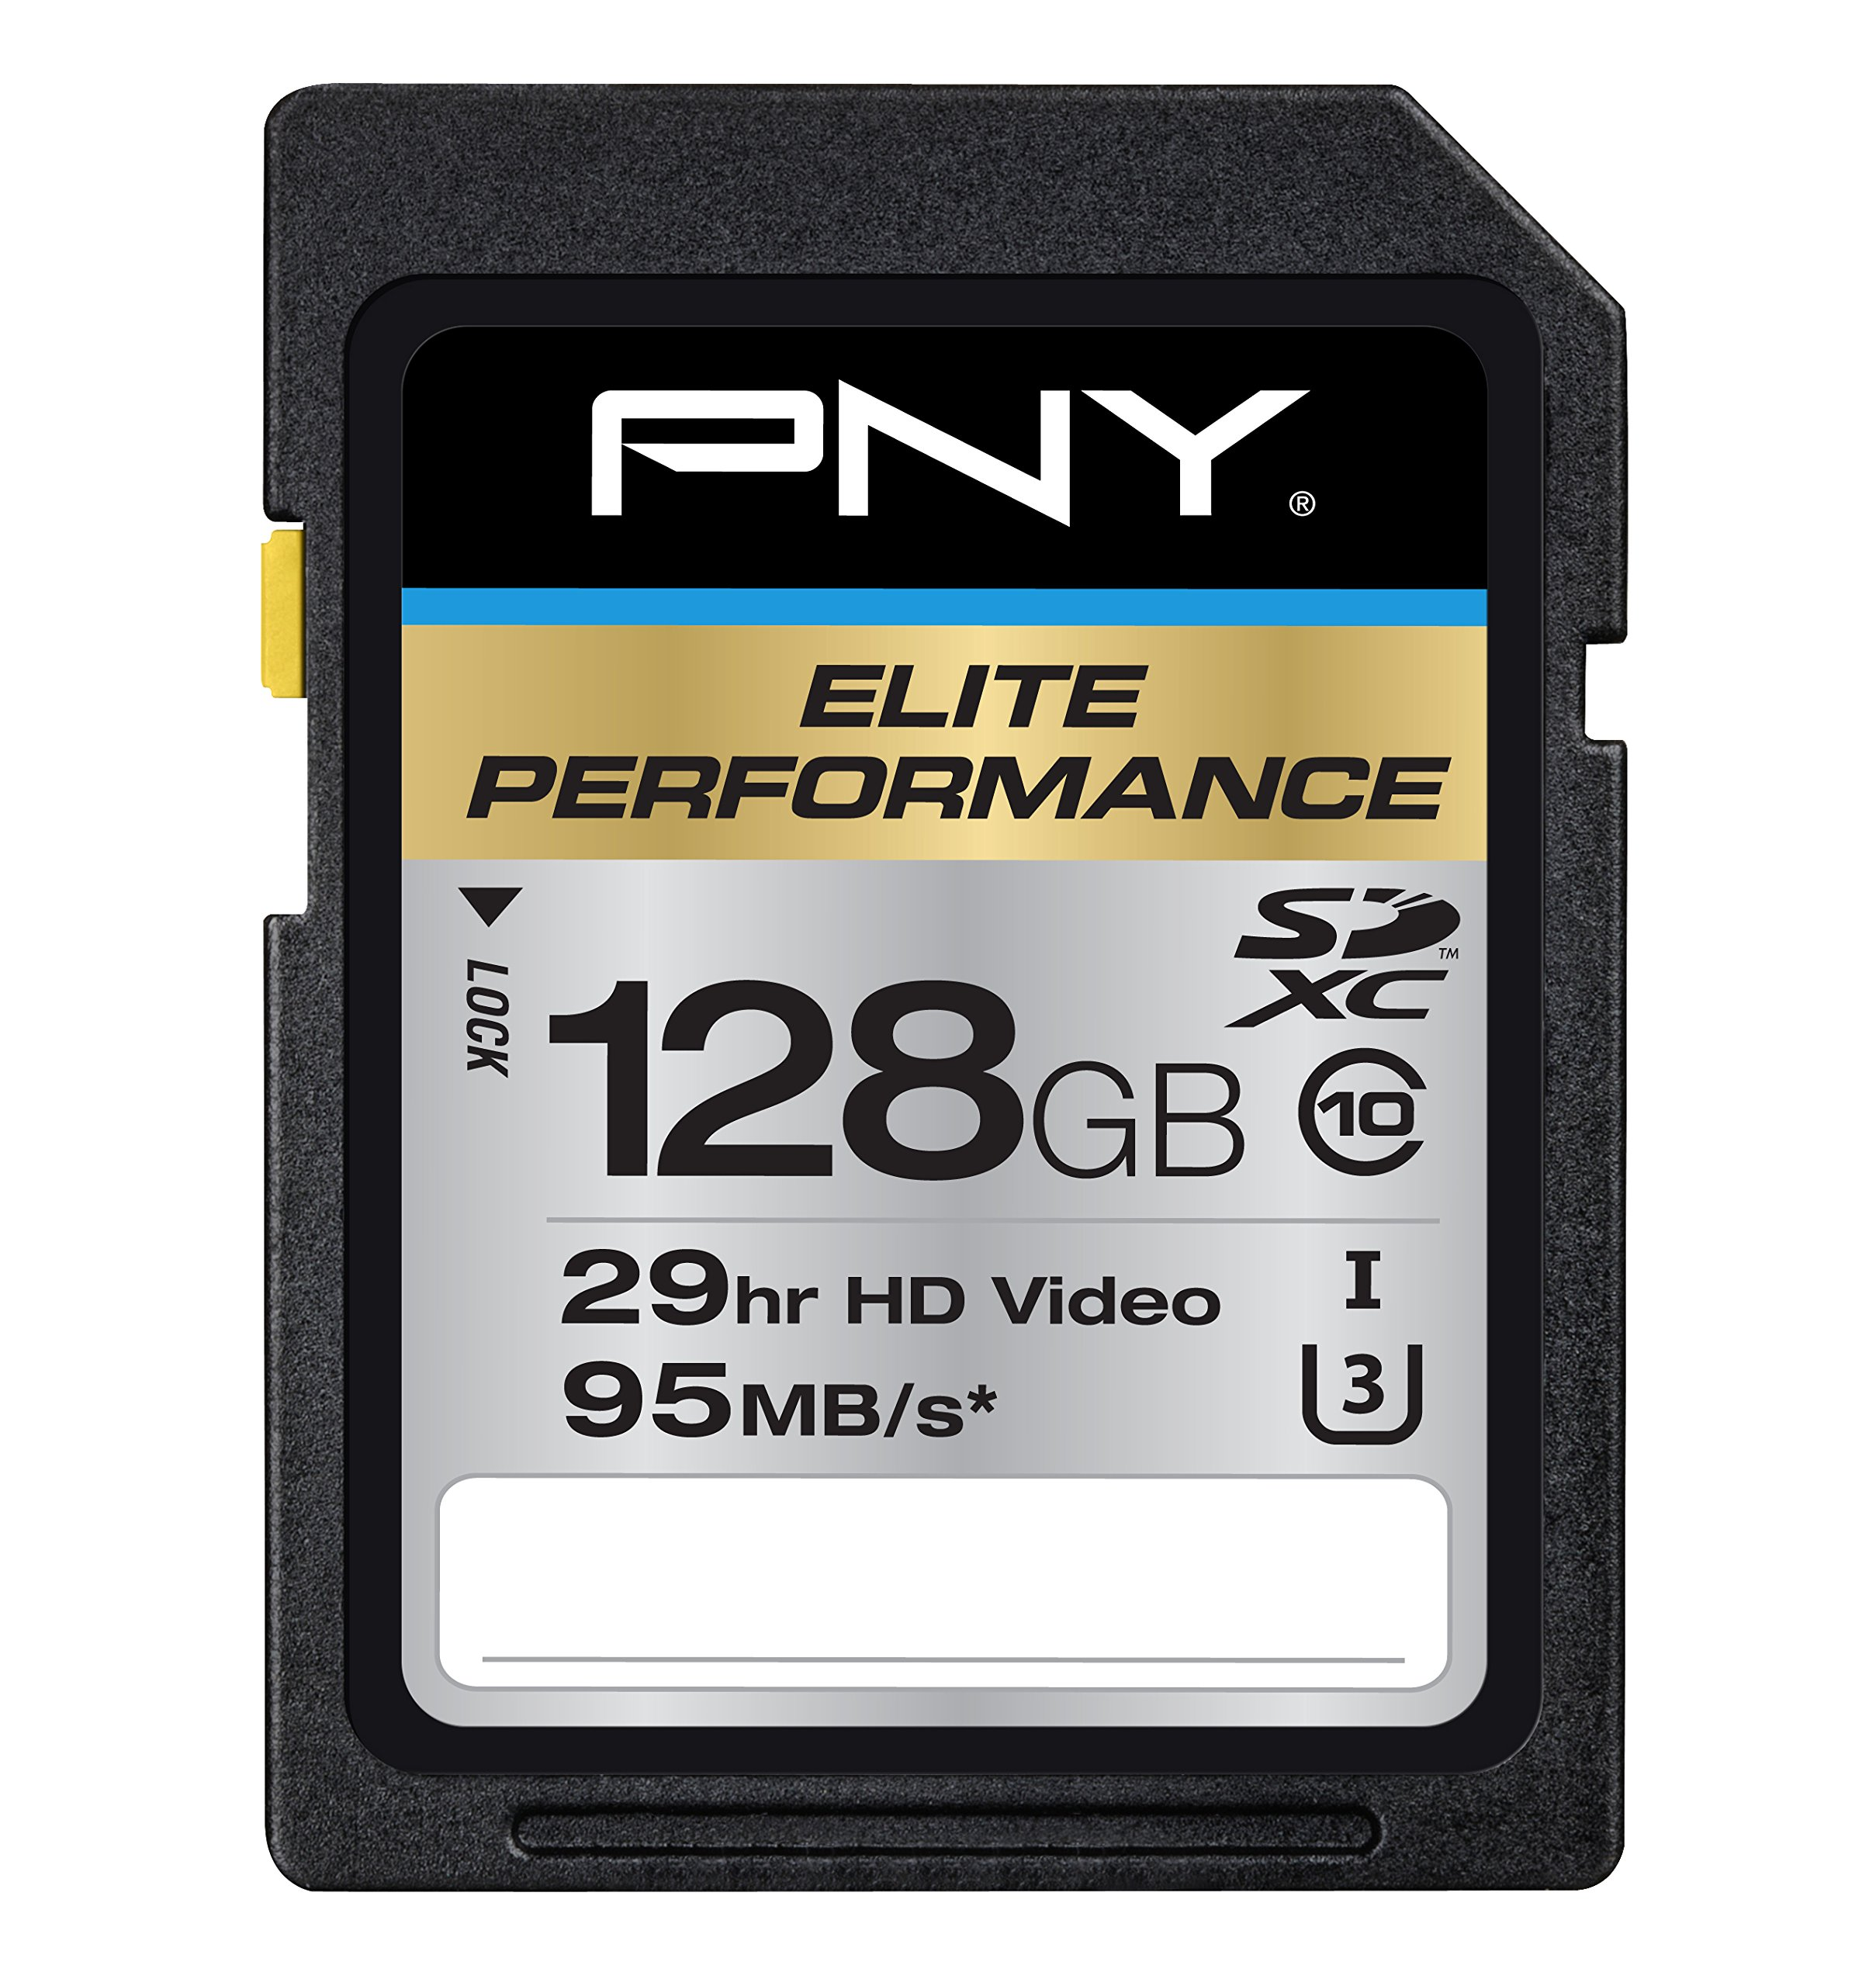 PNY Elite Performance 128 GB High Speed SDXC Class 10 UHS-I, U3 up to 95 MB/Sec Flash Card (P-SDX128U395-GE) by PNY